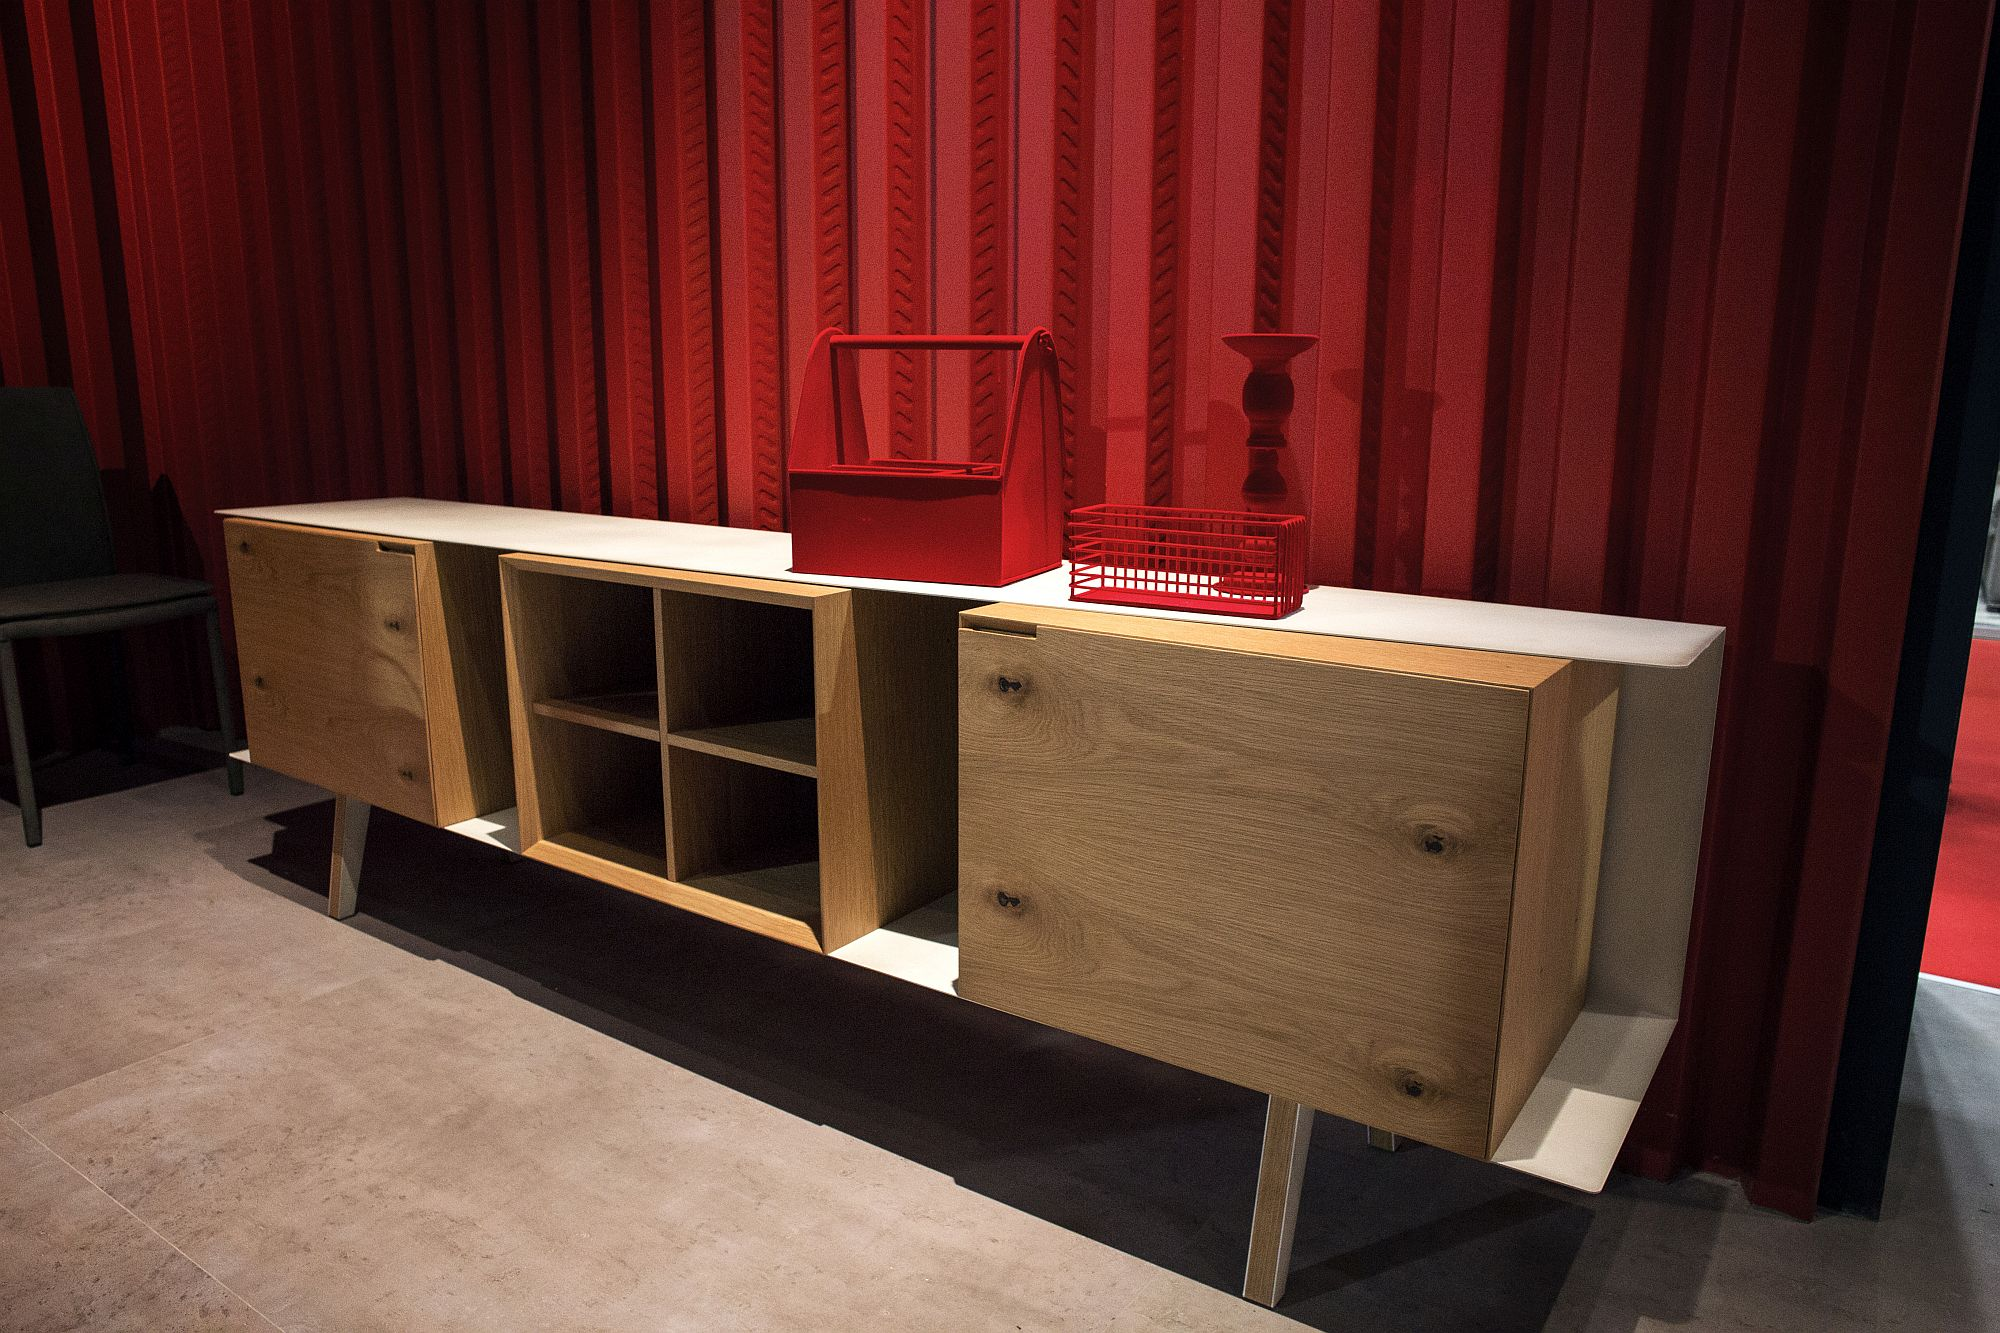 Wooden boxes used to create a cool sideboard